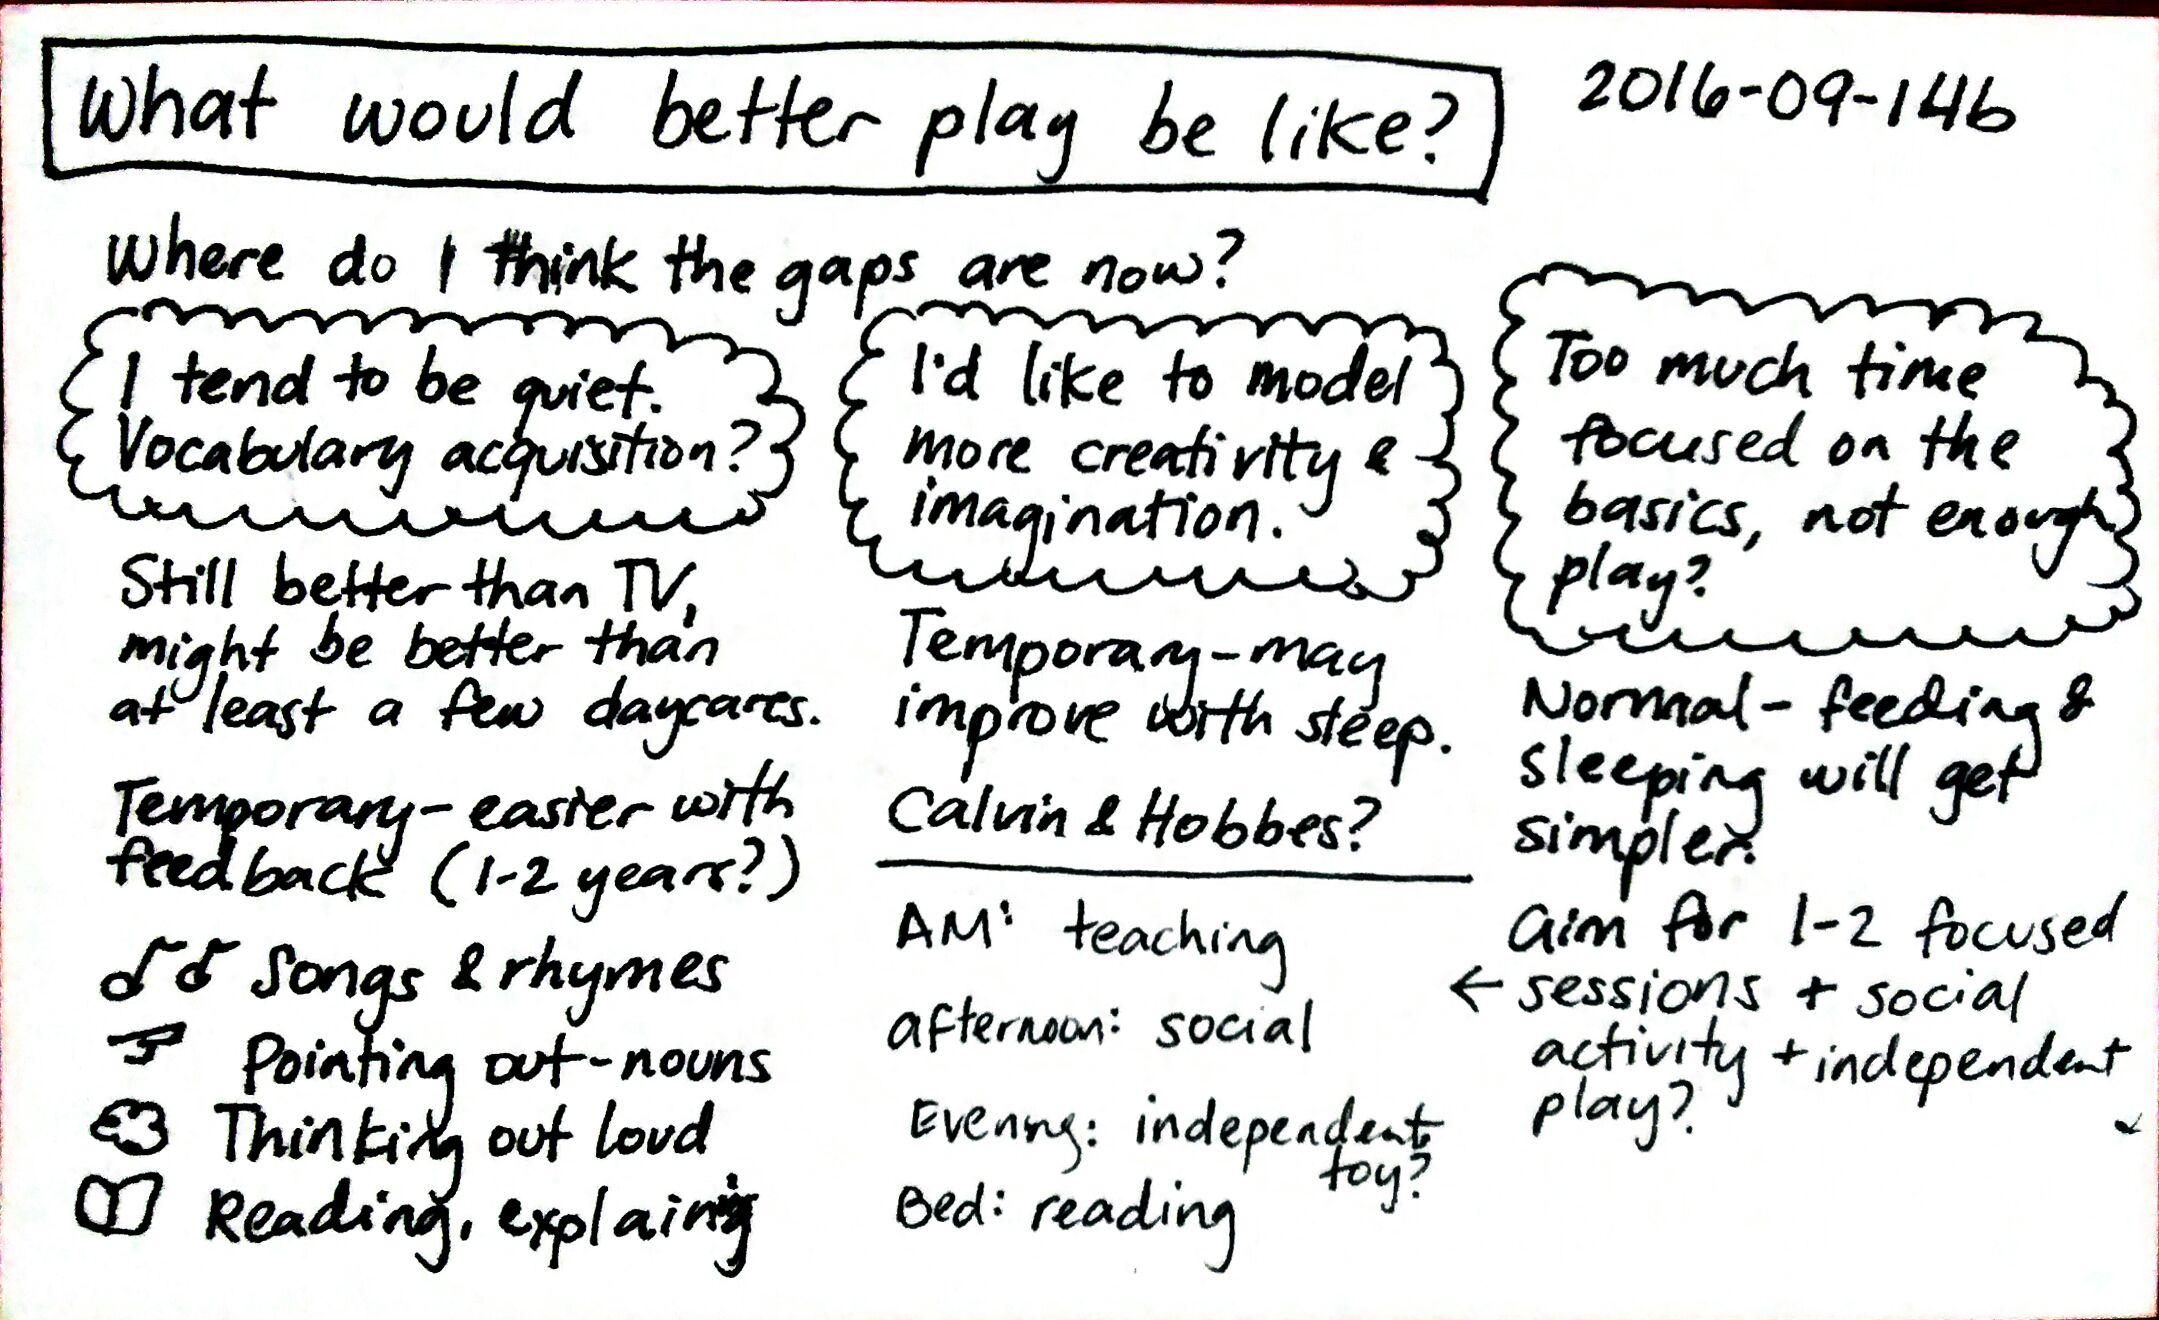 2016-09-14b What would better play be like #play #parenting #balance.png